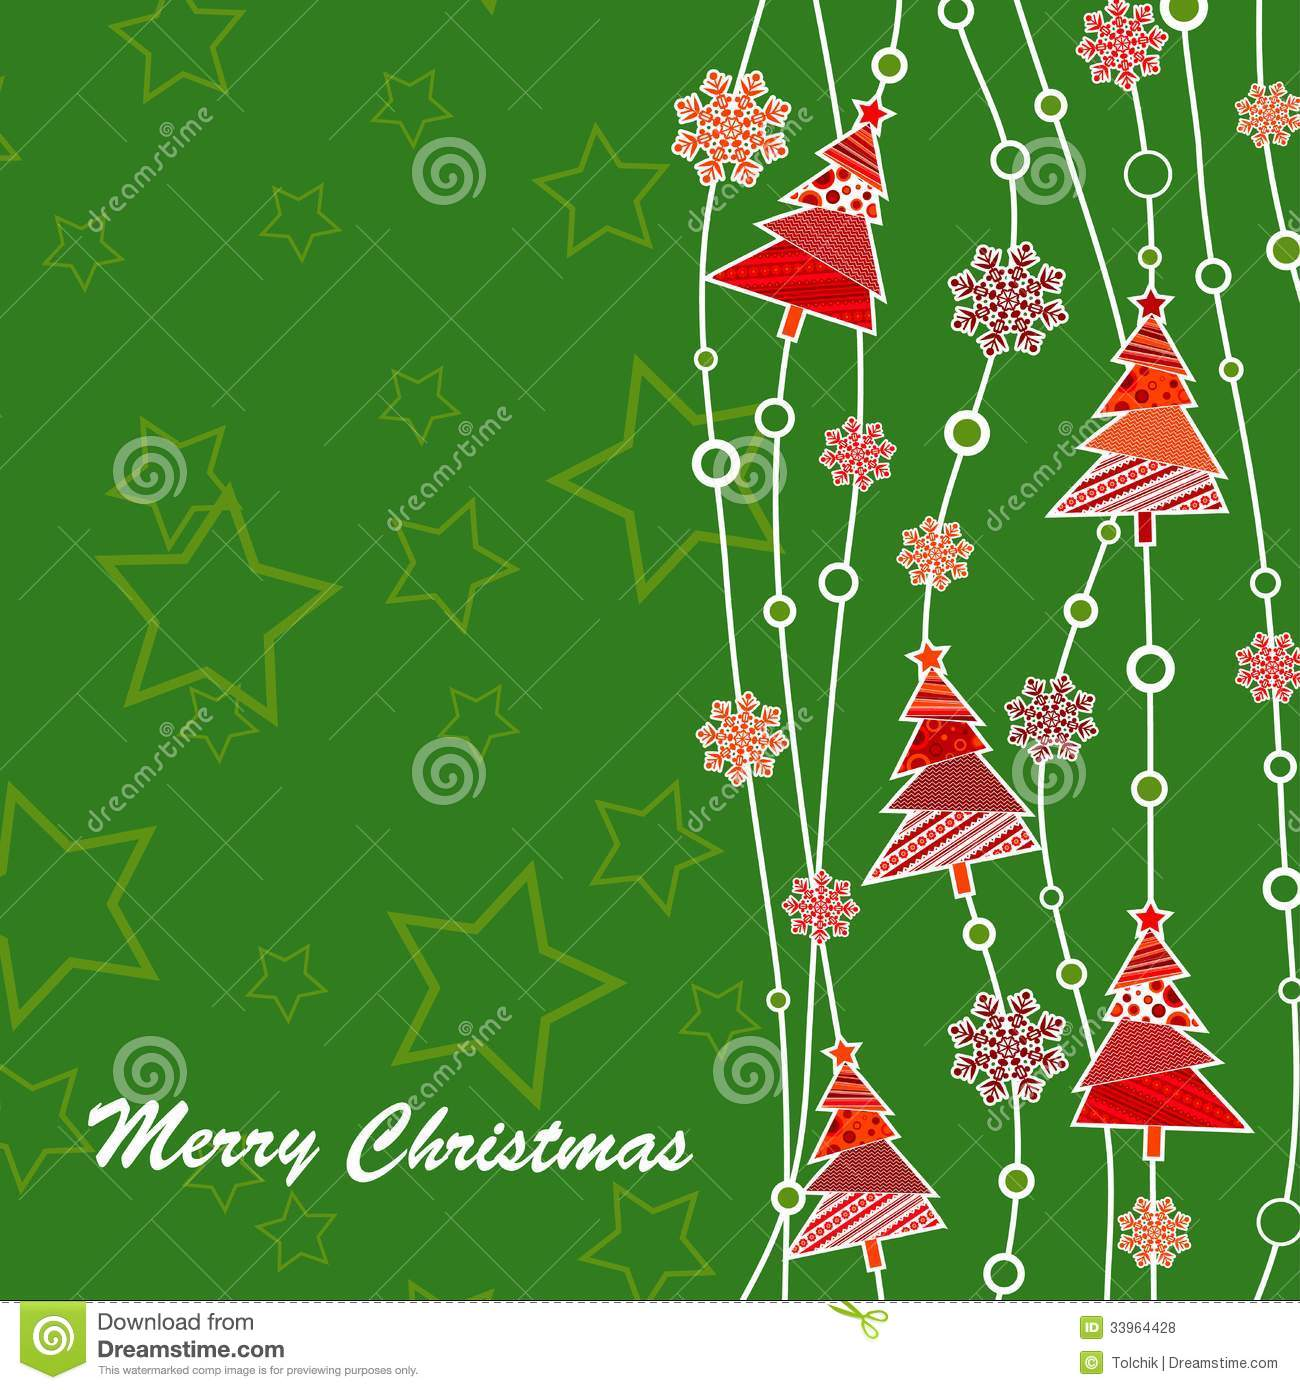 Template Greeting Card Royalty Free Stock Image: Template Christmas Greeting Card Royalty Free Stock Photos